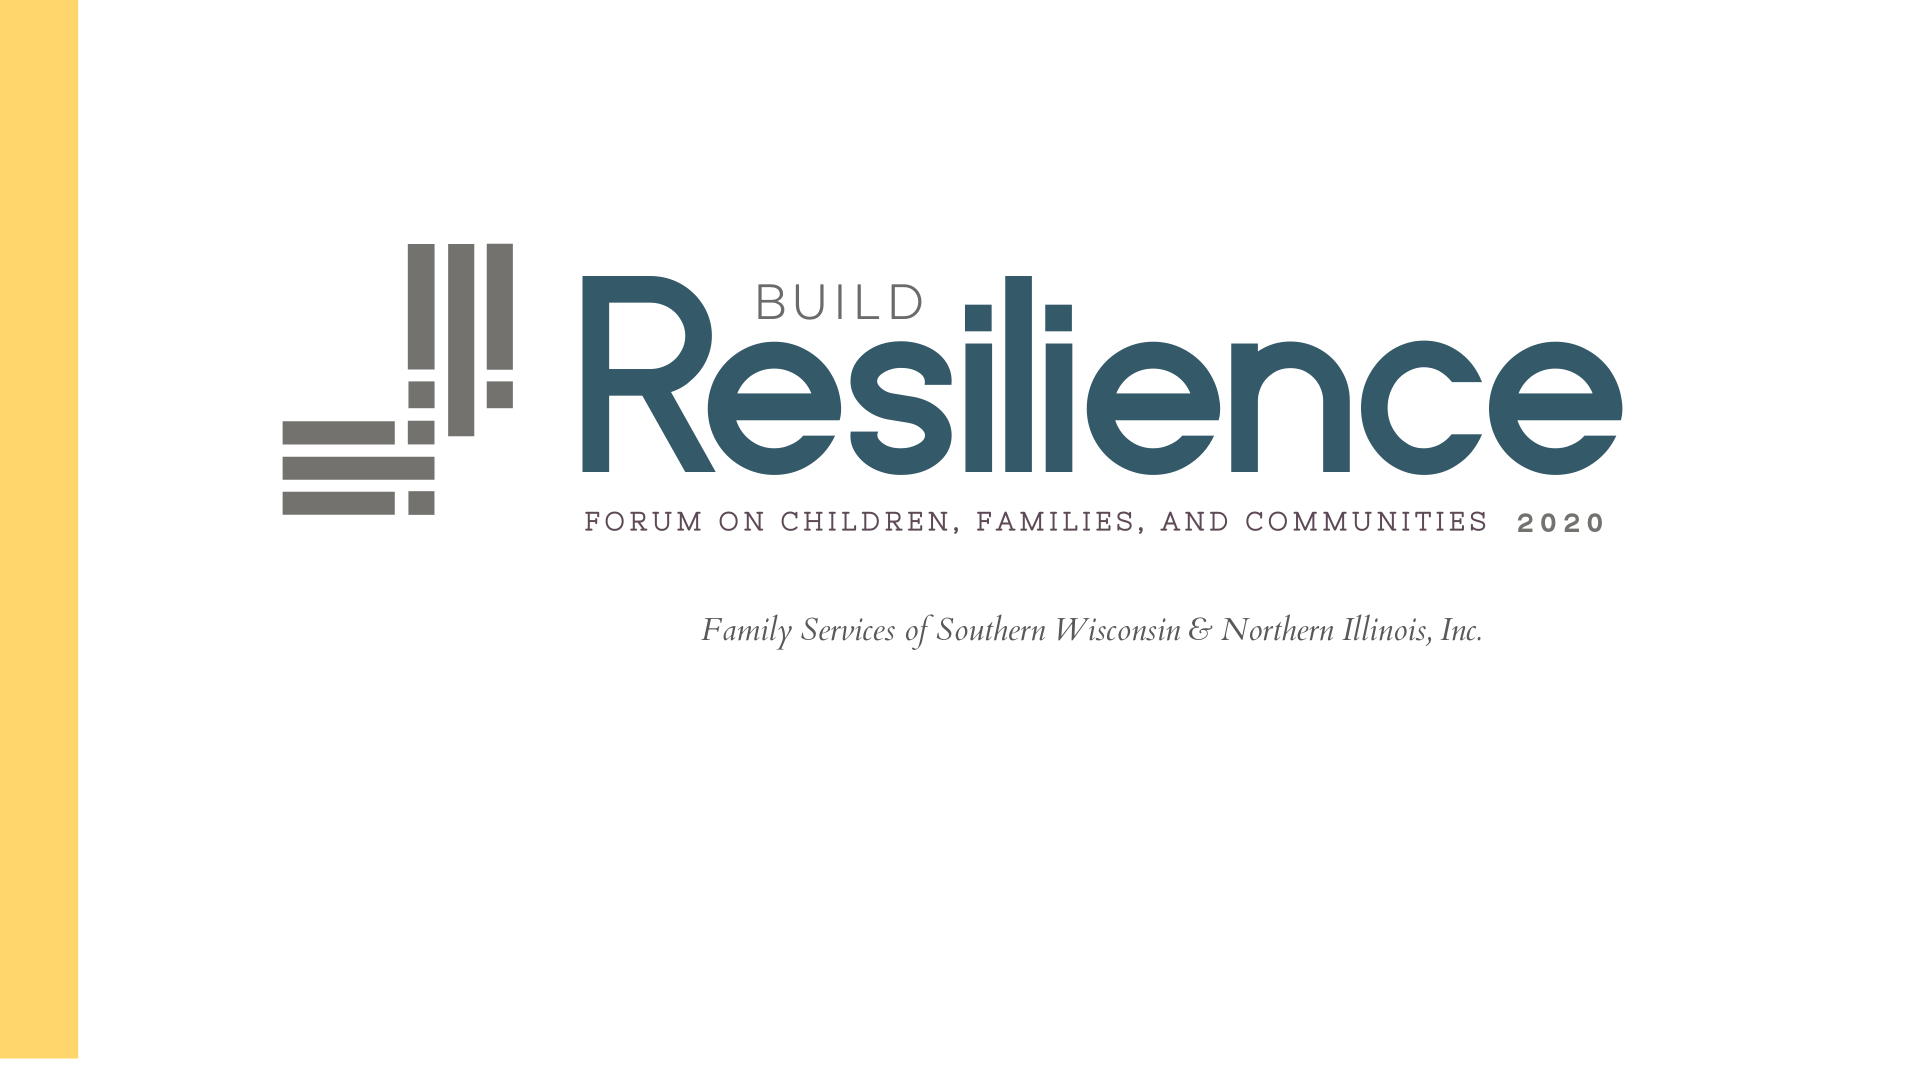 Logo created by Owl Street Studio for Family Services of Beloit Wisconsin's fall fundraising event